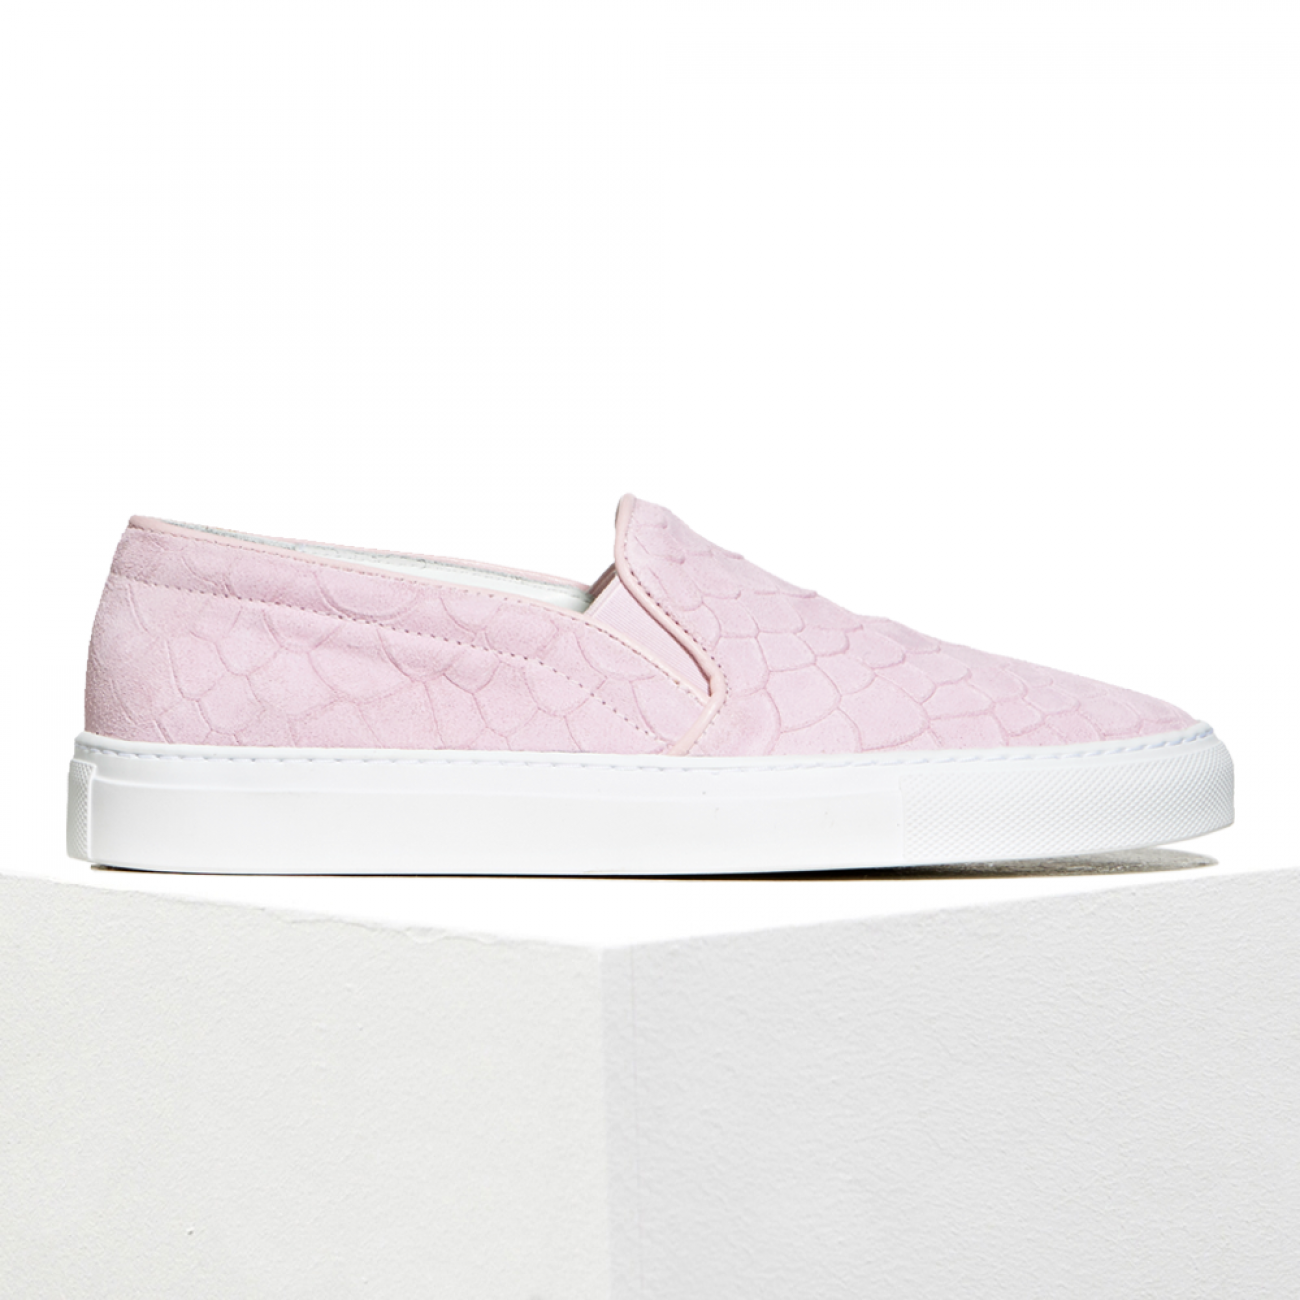 slip-on_soft_pinkScarpeMagazine_AxelArigato-15